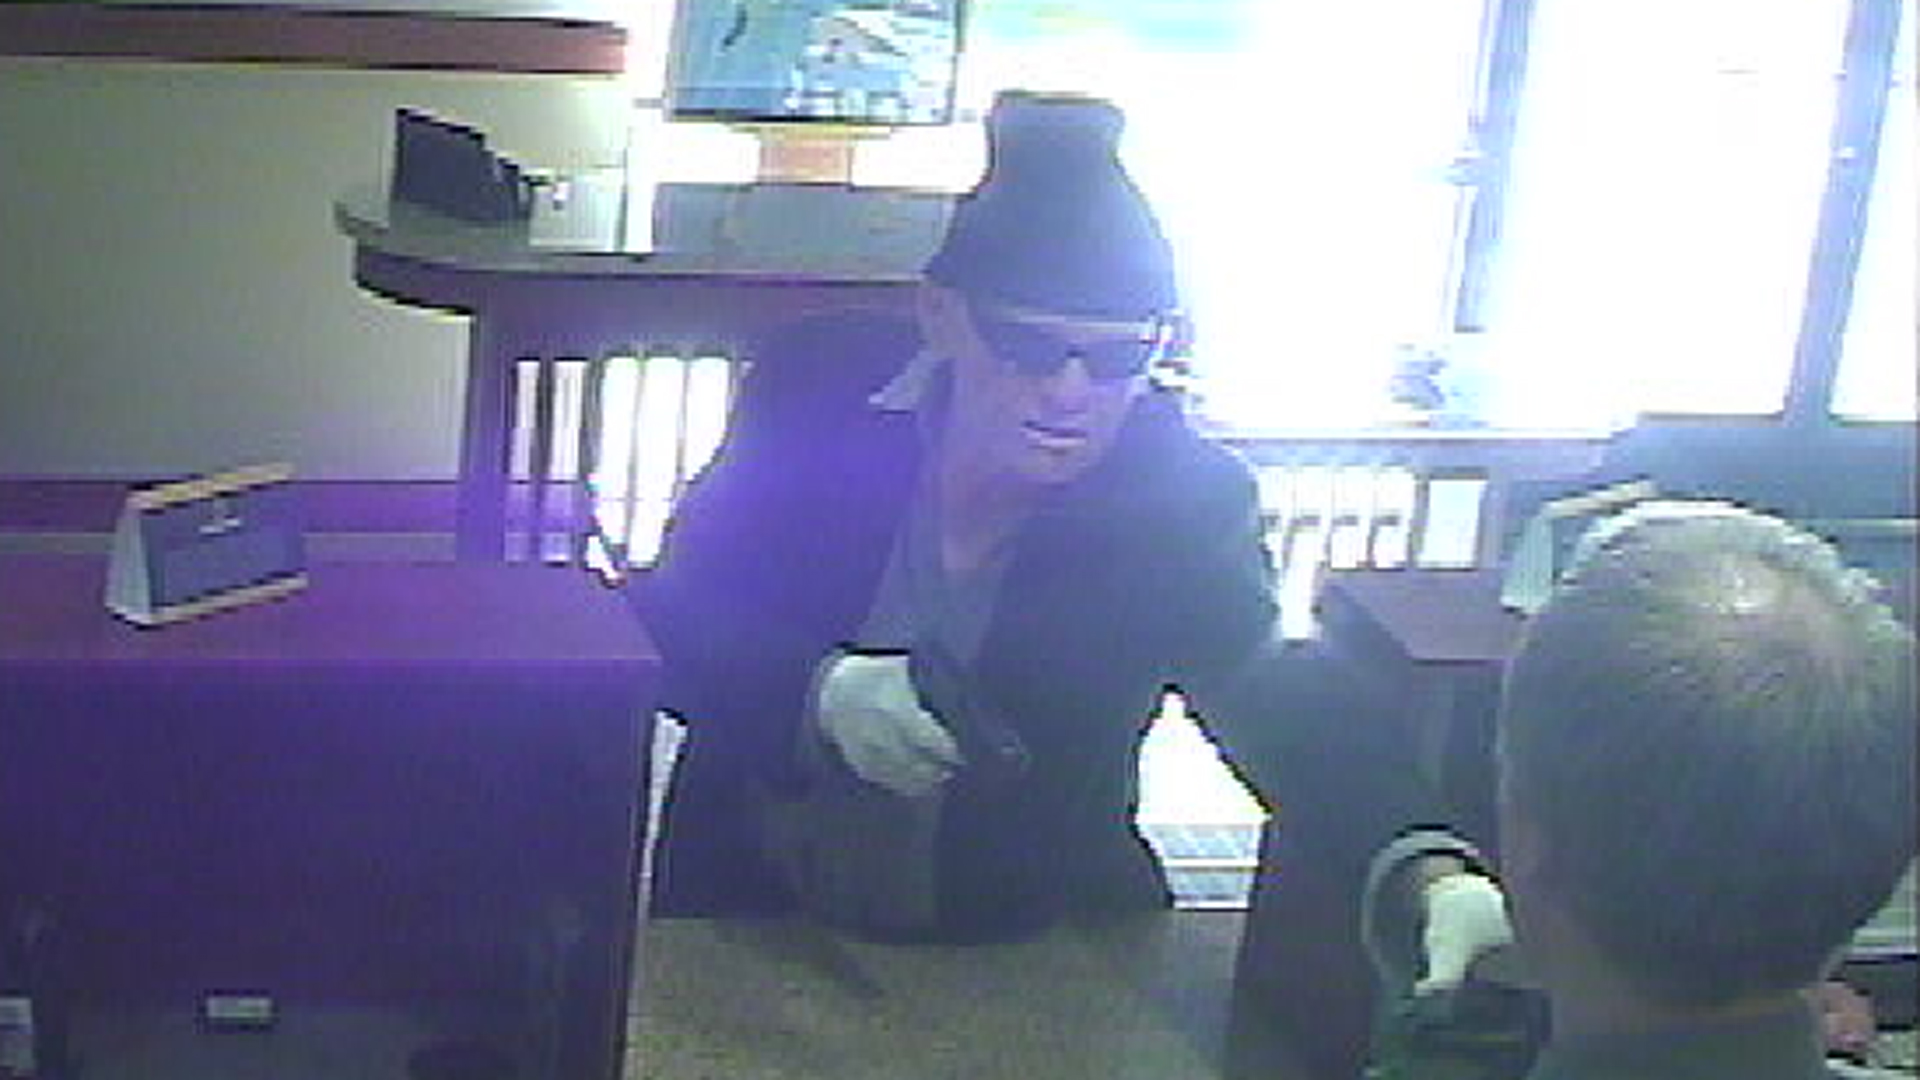 Newport Beach police are seeking the man pictured in this surveillance photo in connection with a bank robbery at OneWest Bank, 3700 East Coast Highway in Corona Del Mar, on March 7, 2019. (Credit: Newport Beach Police Department)